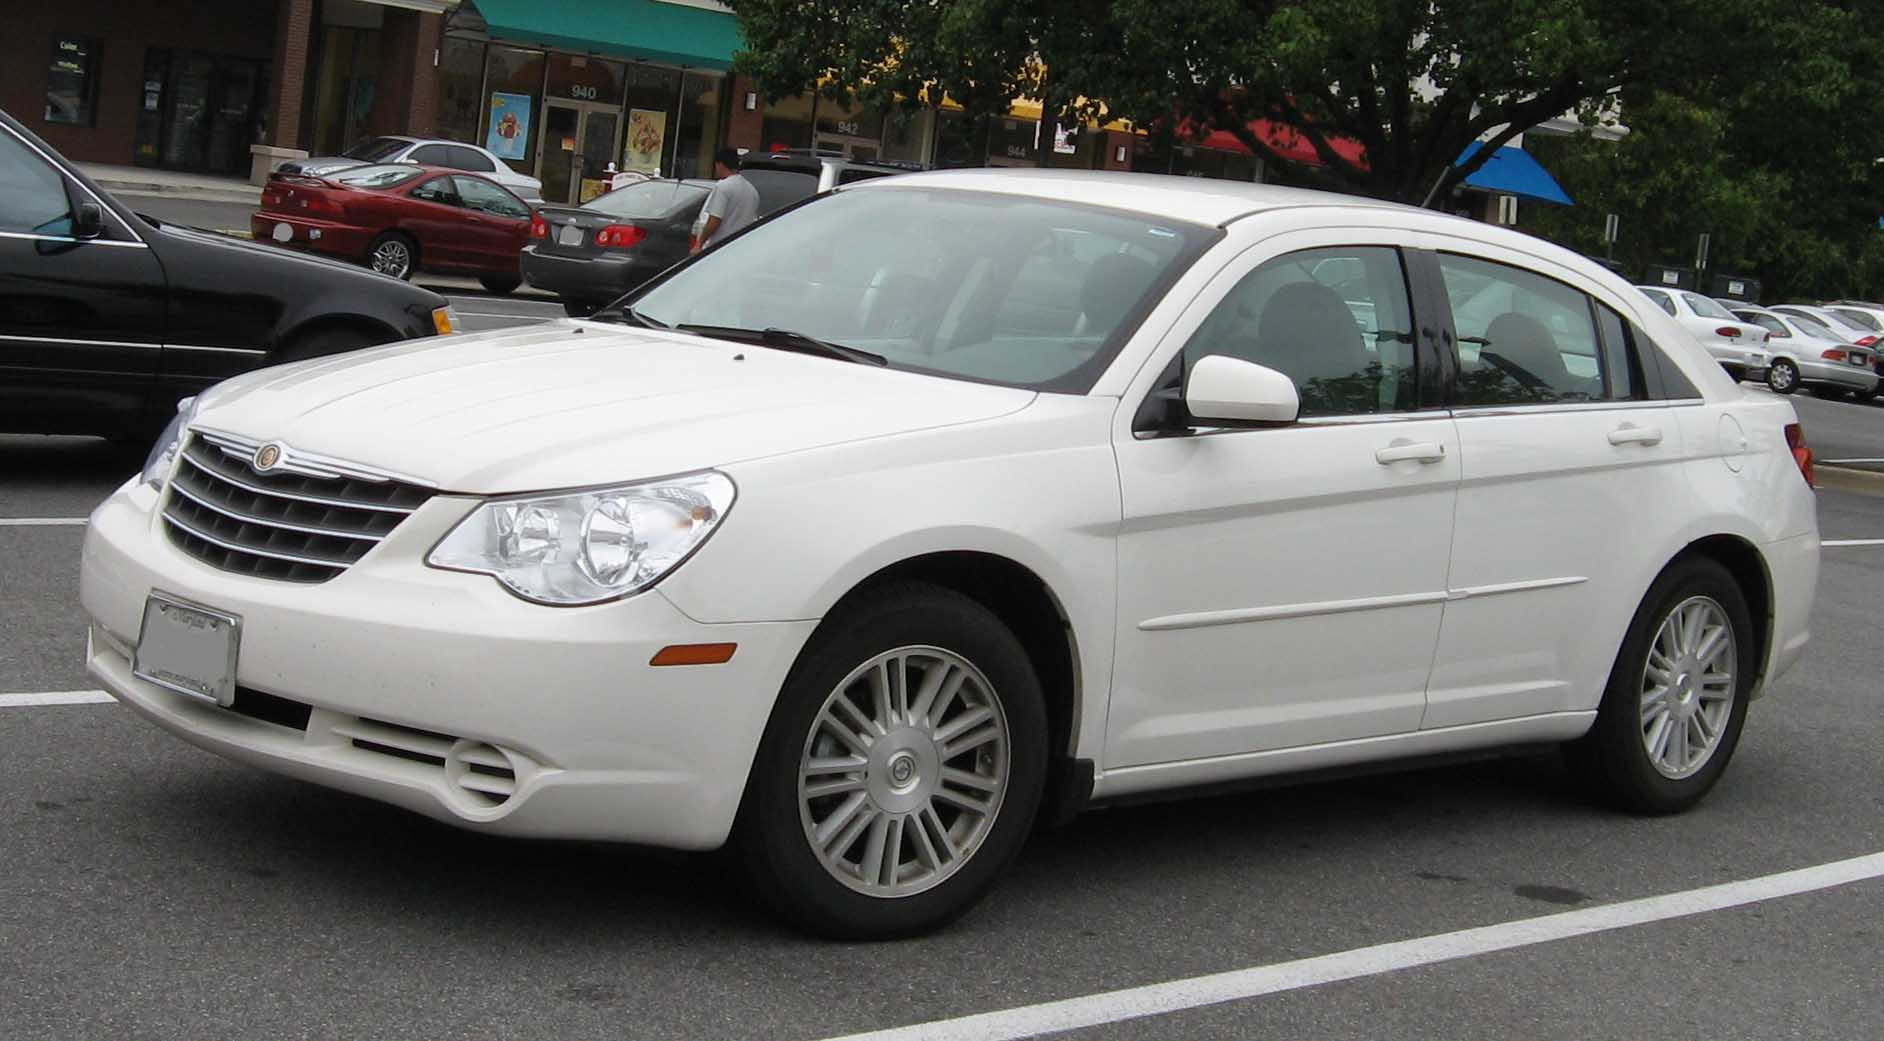 Chrysler 300 Accessories likewise 2007 besides Engine 47648539 further Watch as well Watch. on 2007 chrysler sebring touring